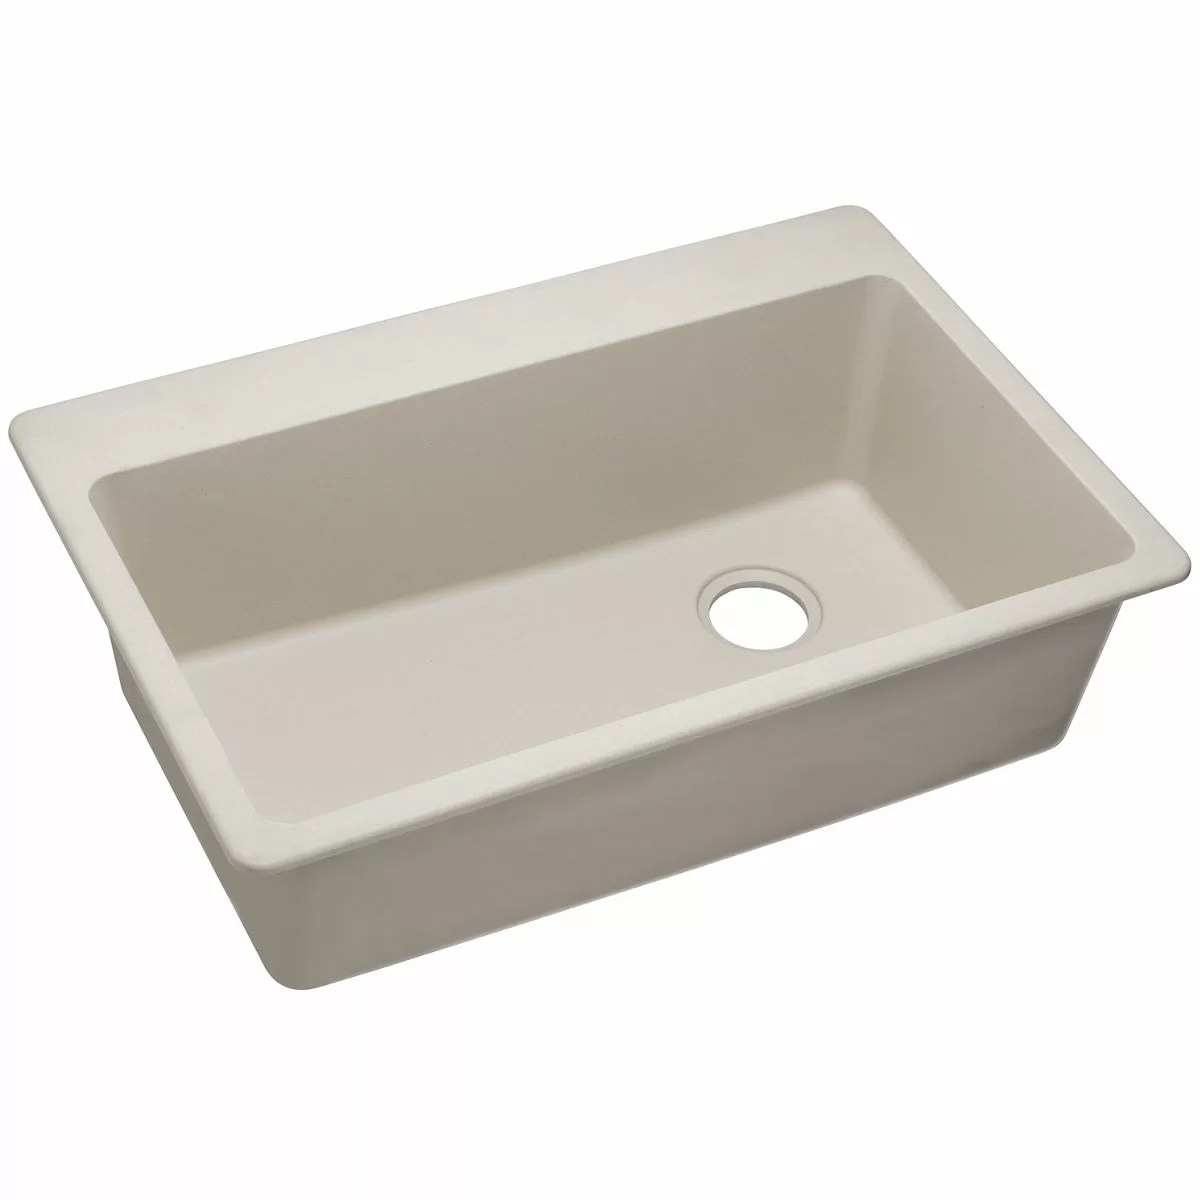 classic kitchen sink small ceiling ideas elkay quartz 33 quot x 22 single bowl top mount